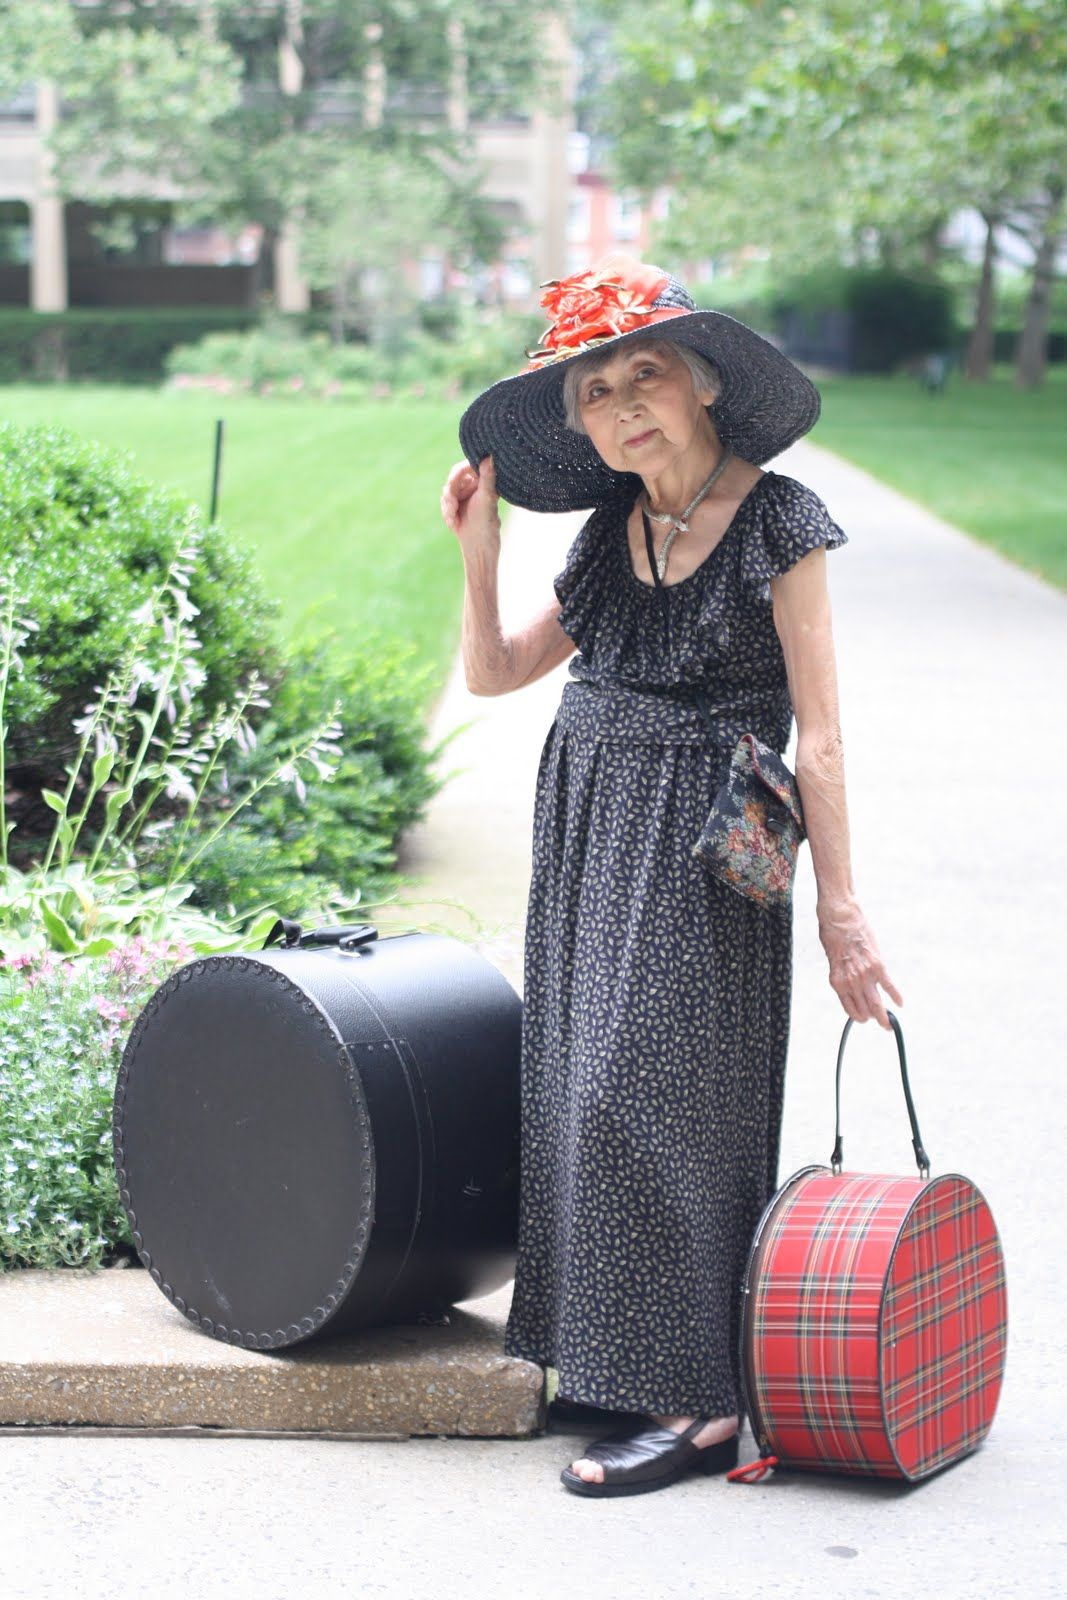 Advanced style this is what aging should be about hahahahahahaha